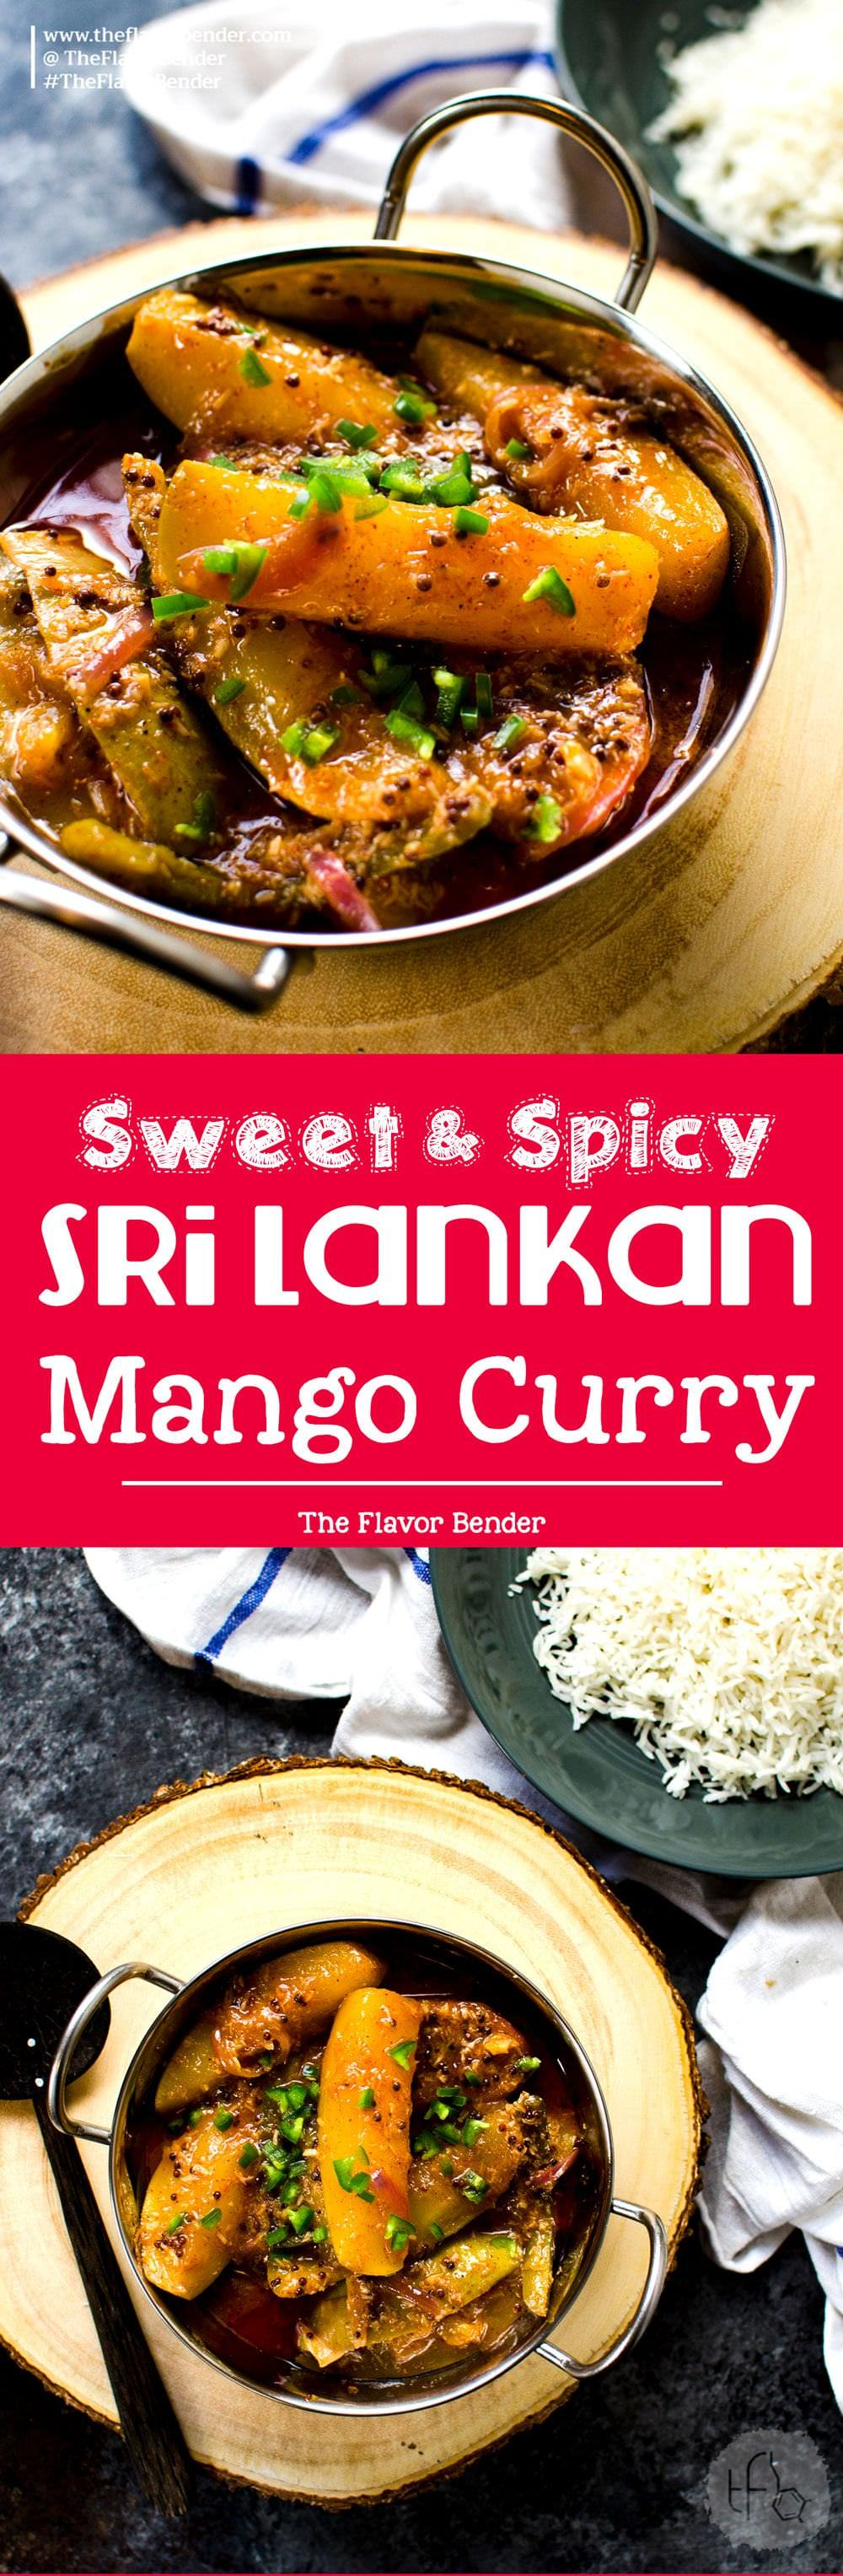 Sri Lankan Mango Curry - An easy curry recipe that is sweet, sour and spicy. Vegan and Gluten free and is absolutely amazing! A Sri Lankan favorite!